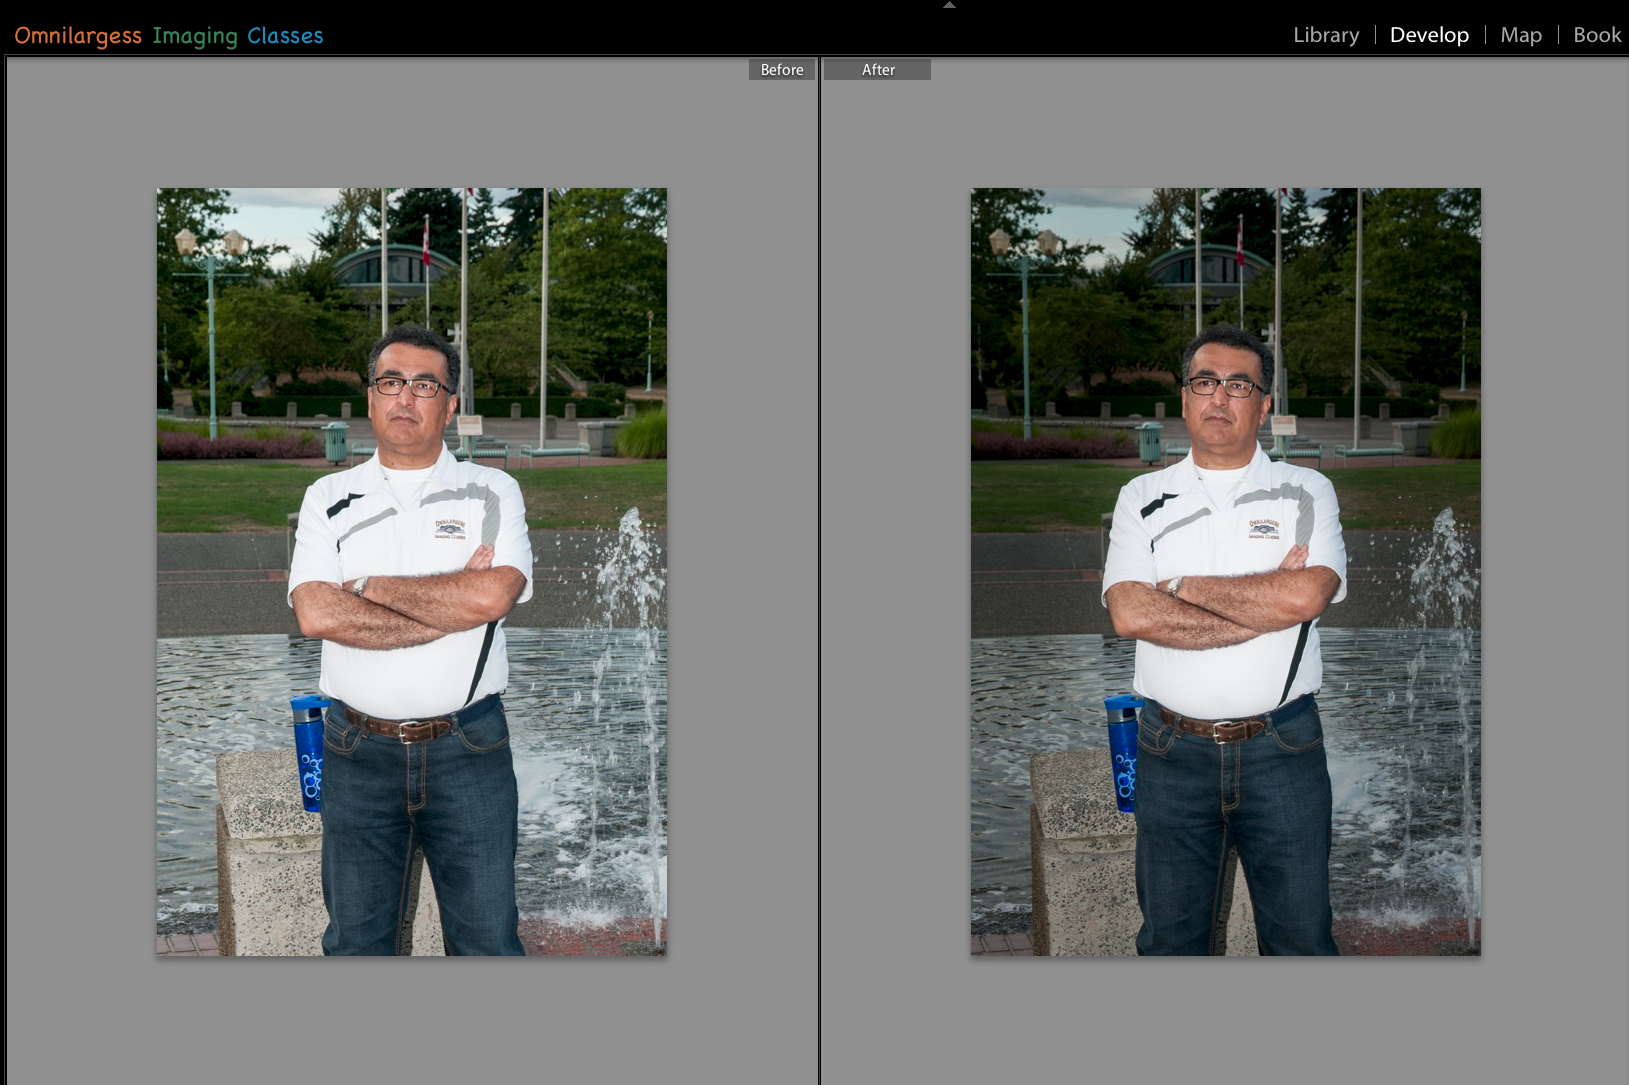 Before and After Lightroom Radial Filter exposure and vignetting